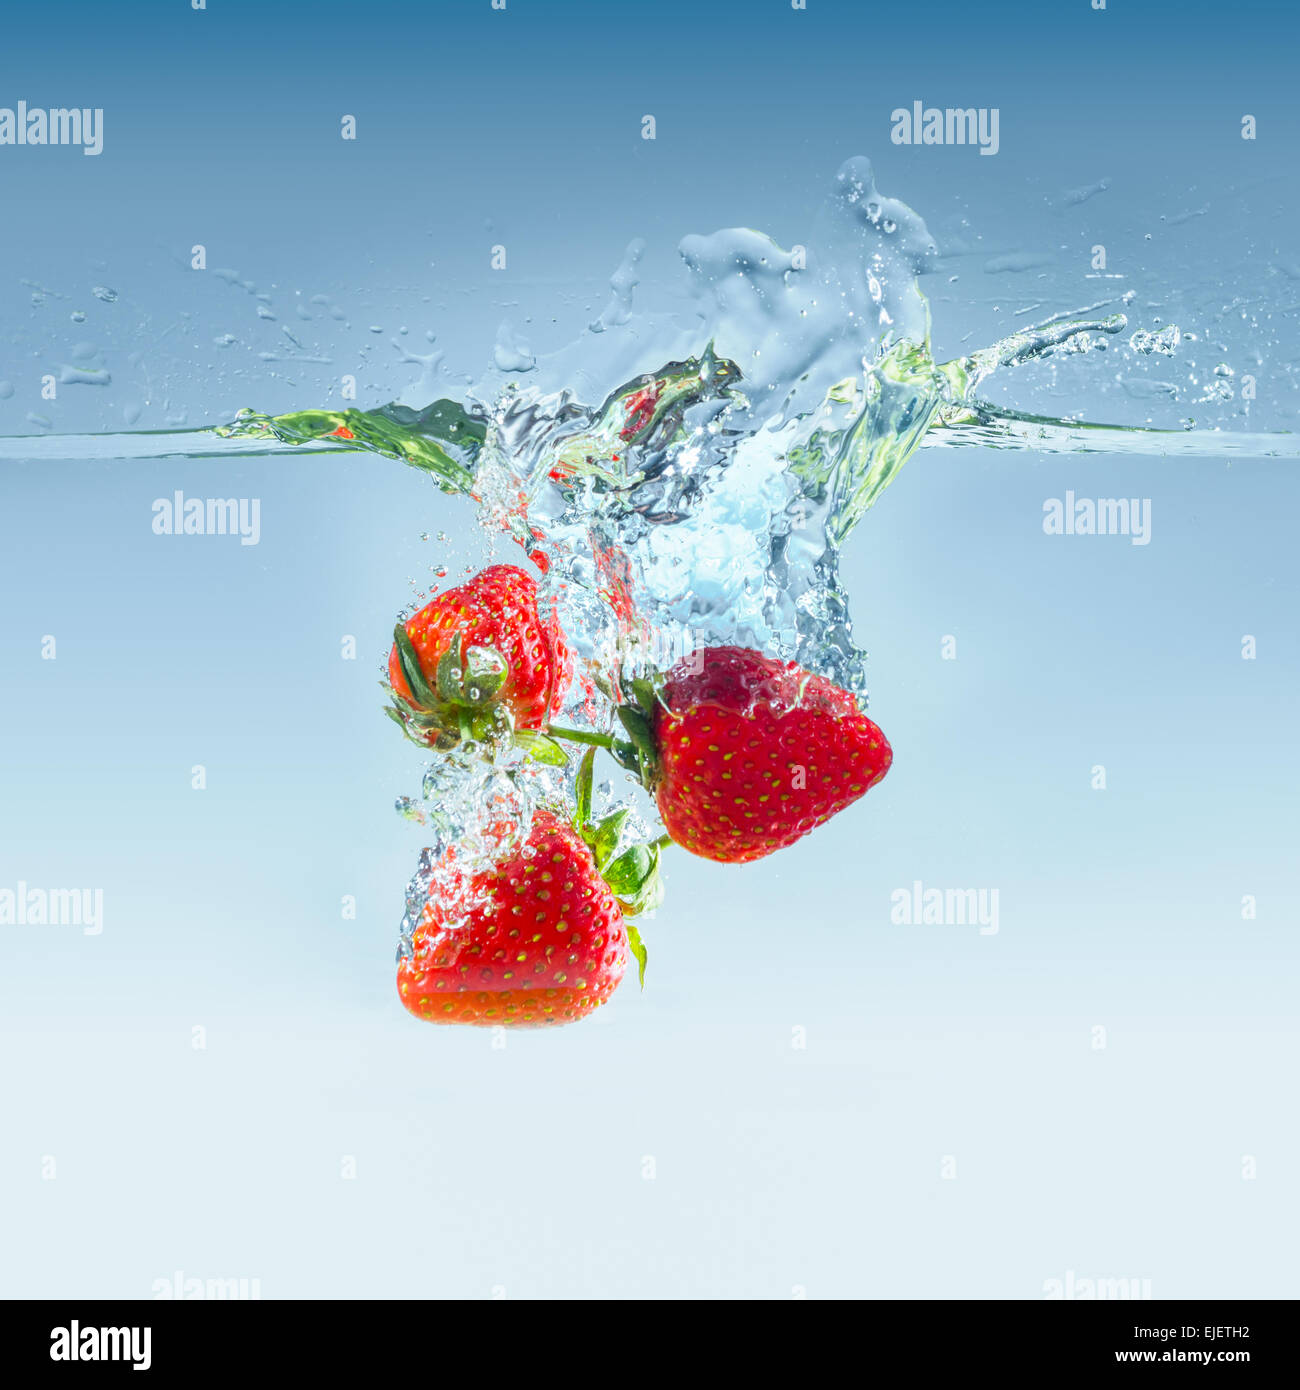 Strawberry's in water - Stock Image